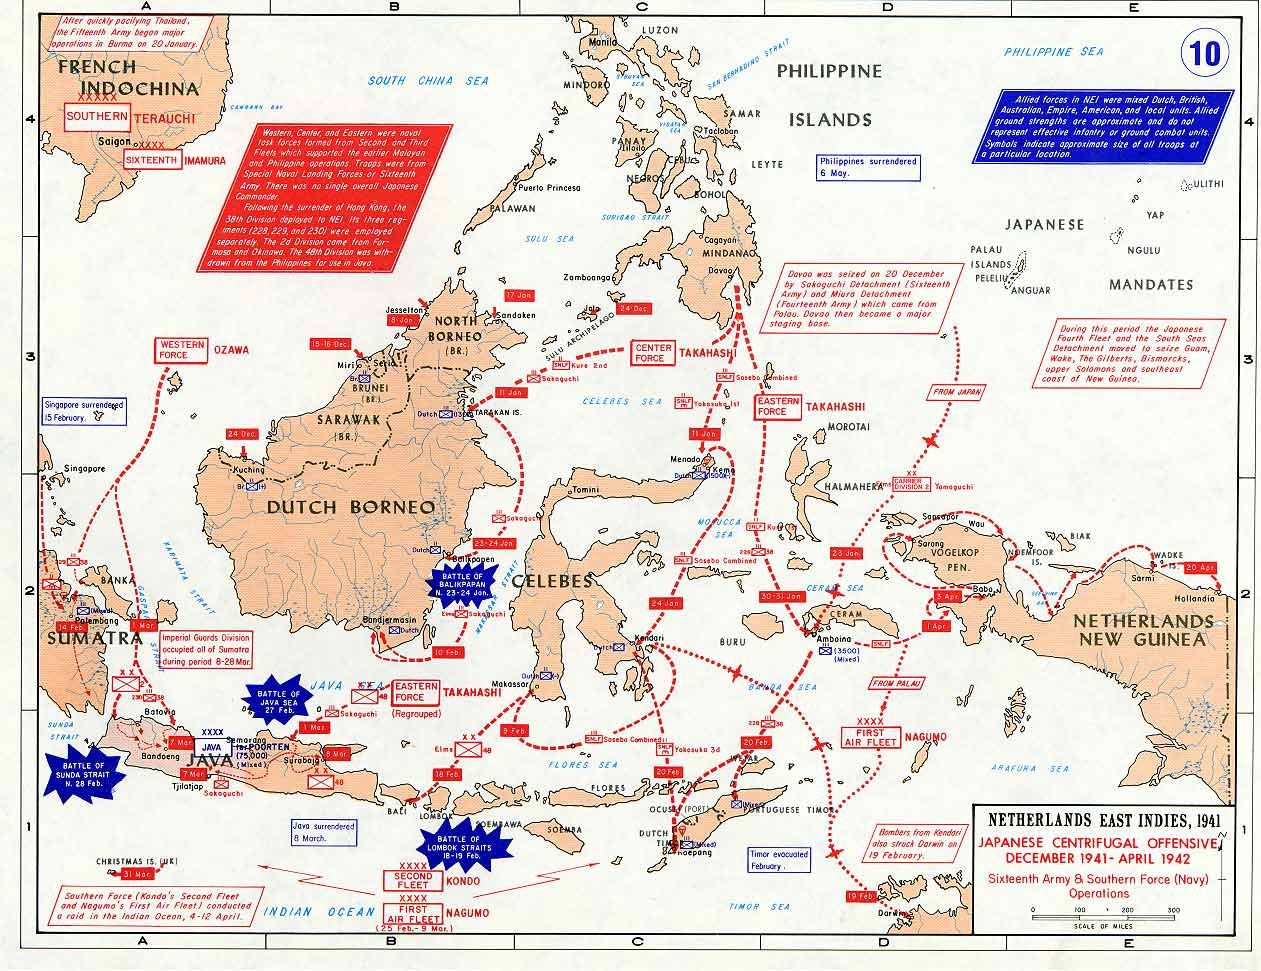 Map Map Showing Japanese Offensives In The Dutch East Indies Dec